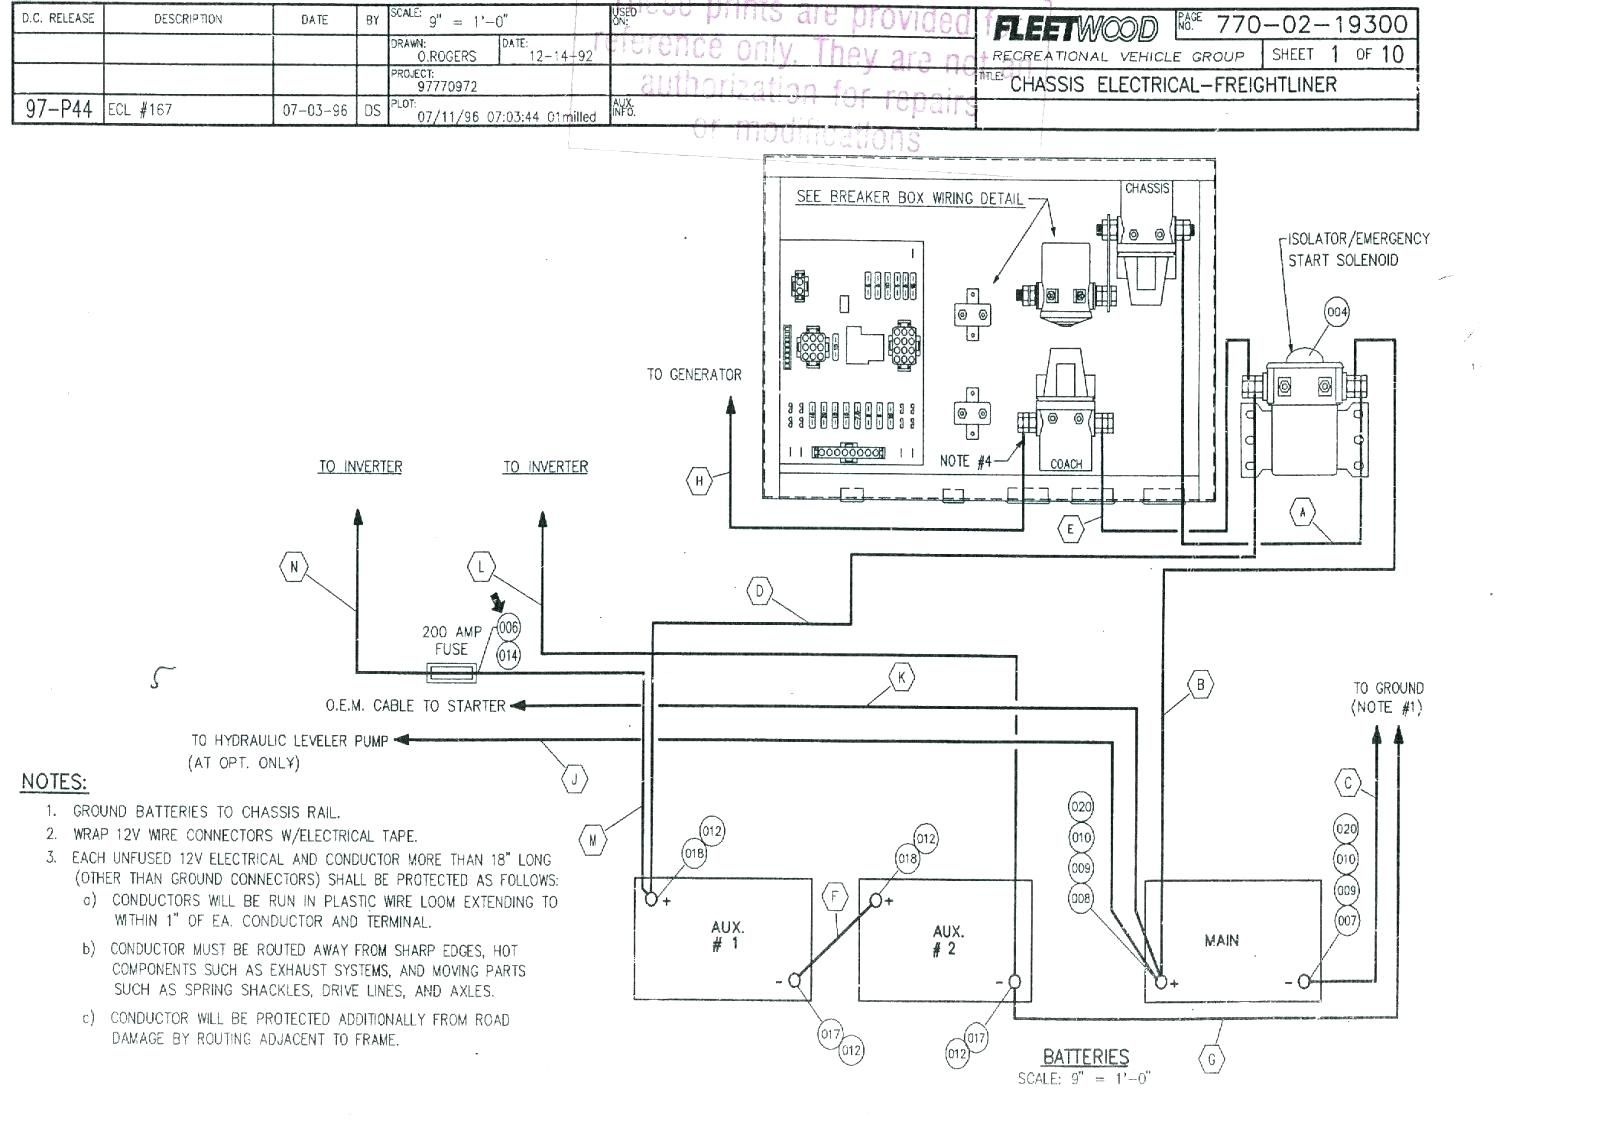 1984 airstream wiring diagram wiring diagramwinnebago wiring diagram pictures wiring diagram wiring diagramwinnebago wiring diagram pictures [ 1600 x 1121 Pixel ]